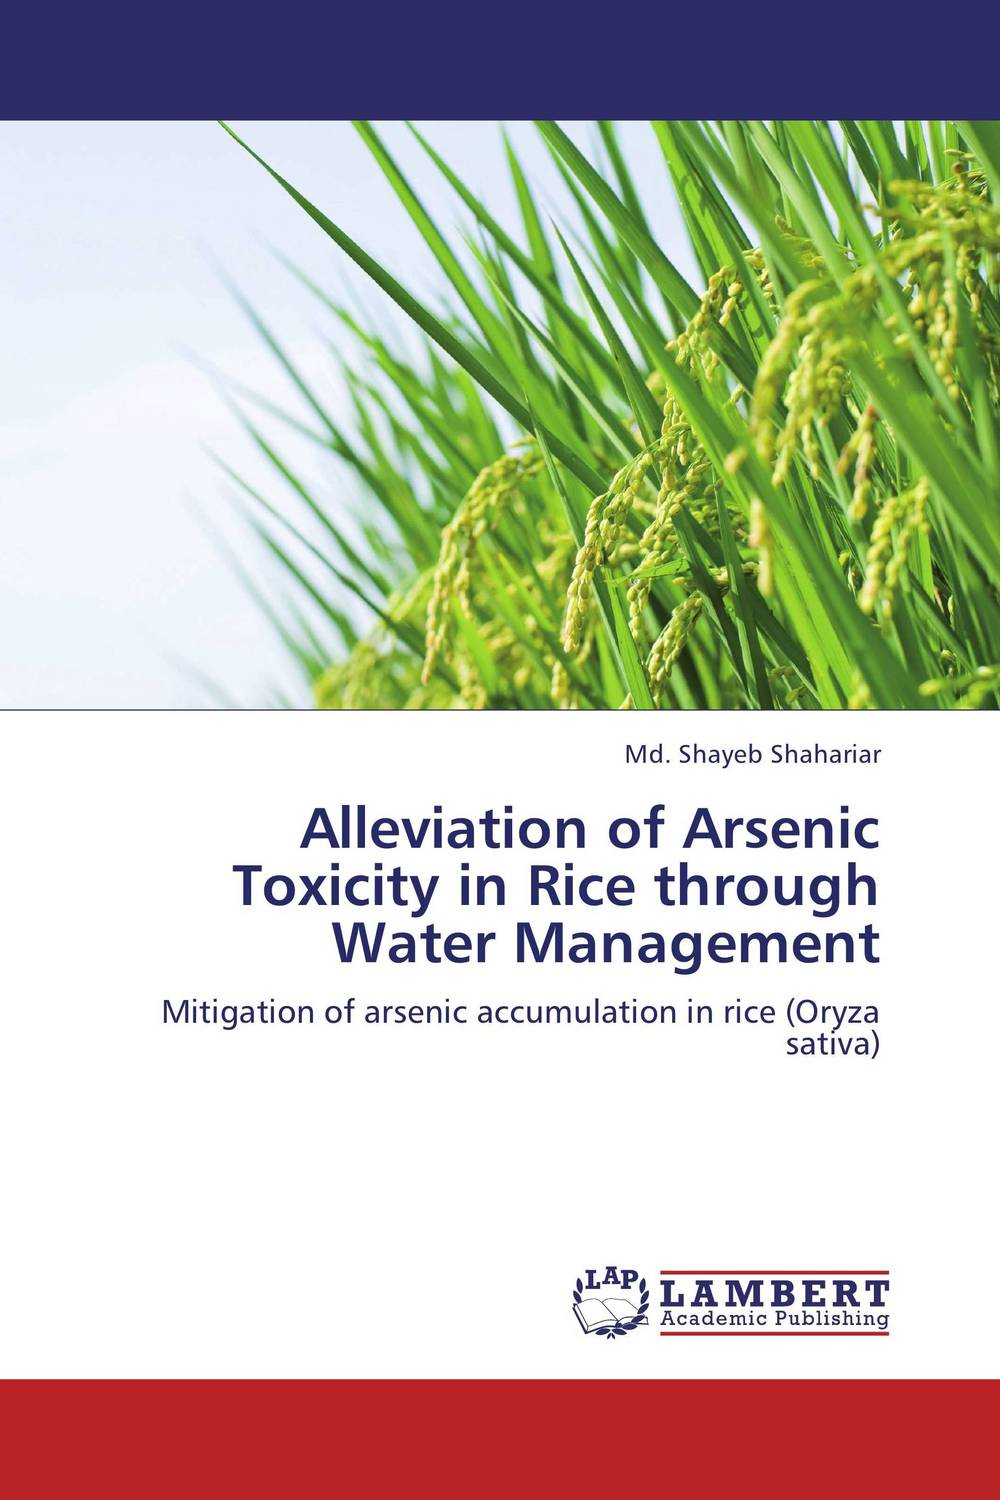 цена на Alleviation of Arsenic Toxicity in Rice through Water Management